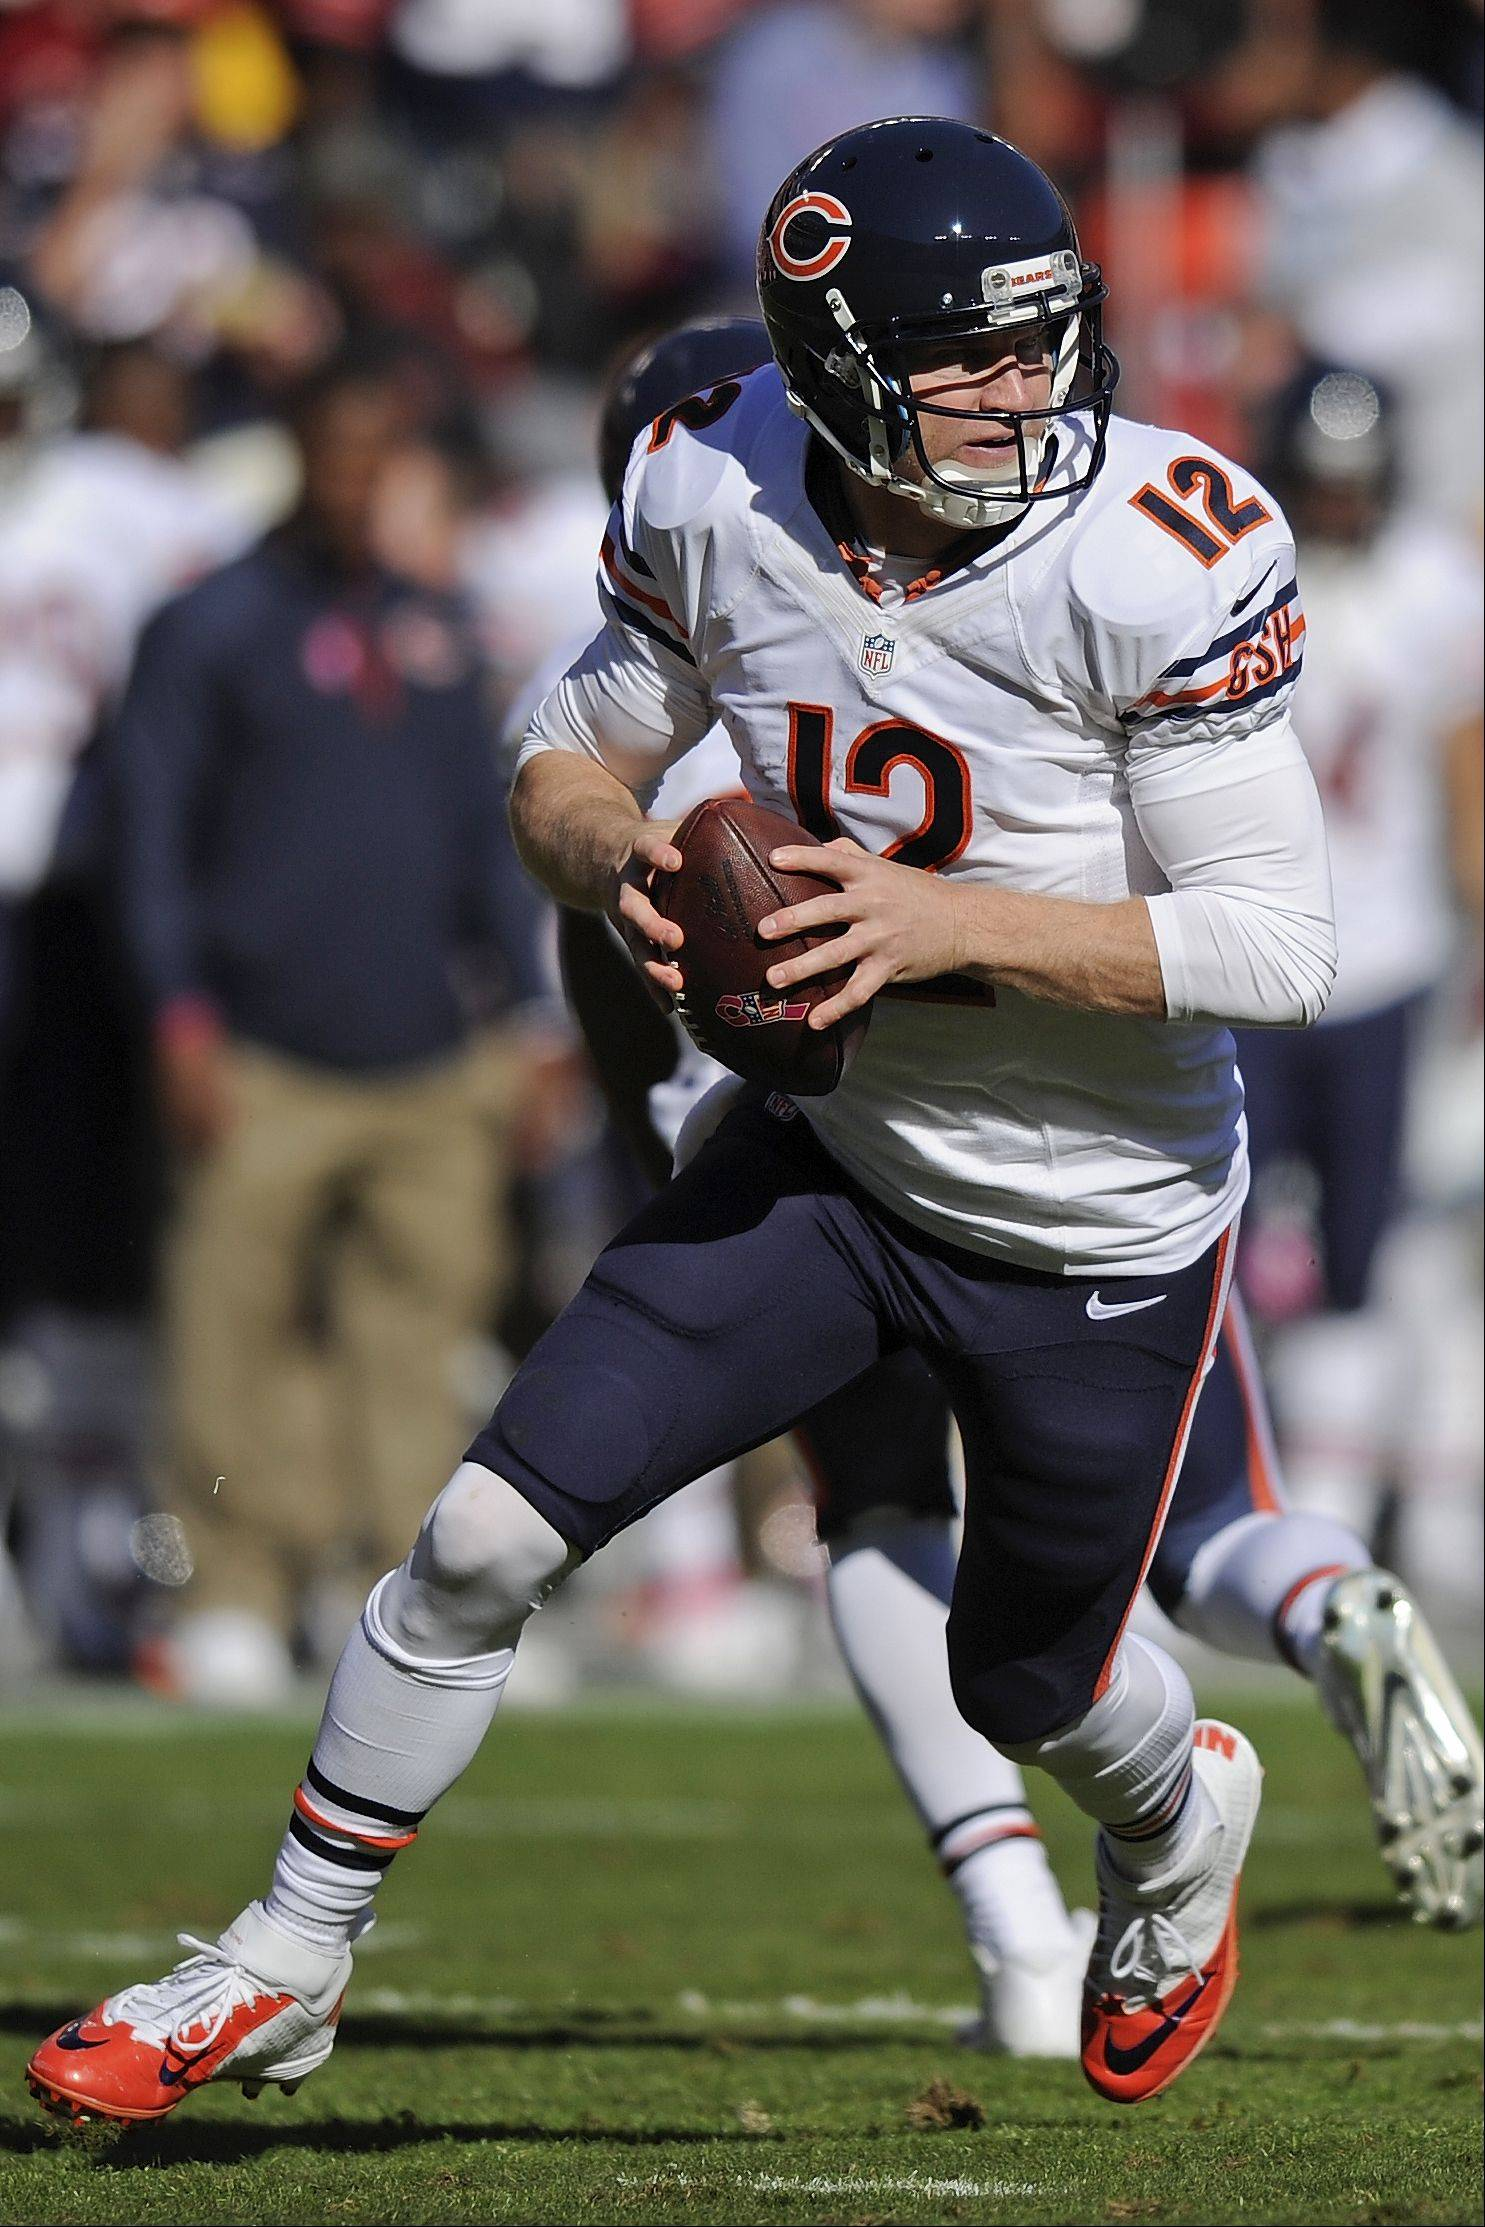 Josh McCown scrambles out of the pocket against the Skins on Oct. 20. McCown's solid play in part or all of the last three games likely means the well-traveled veteran quarterback will have a job somewhere in the NFL in 2014.